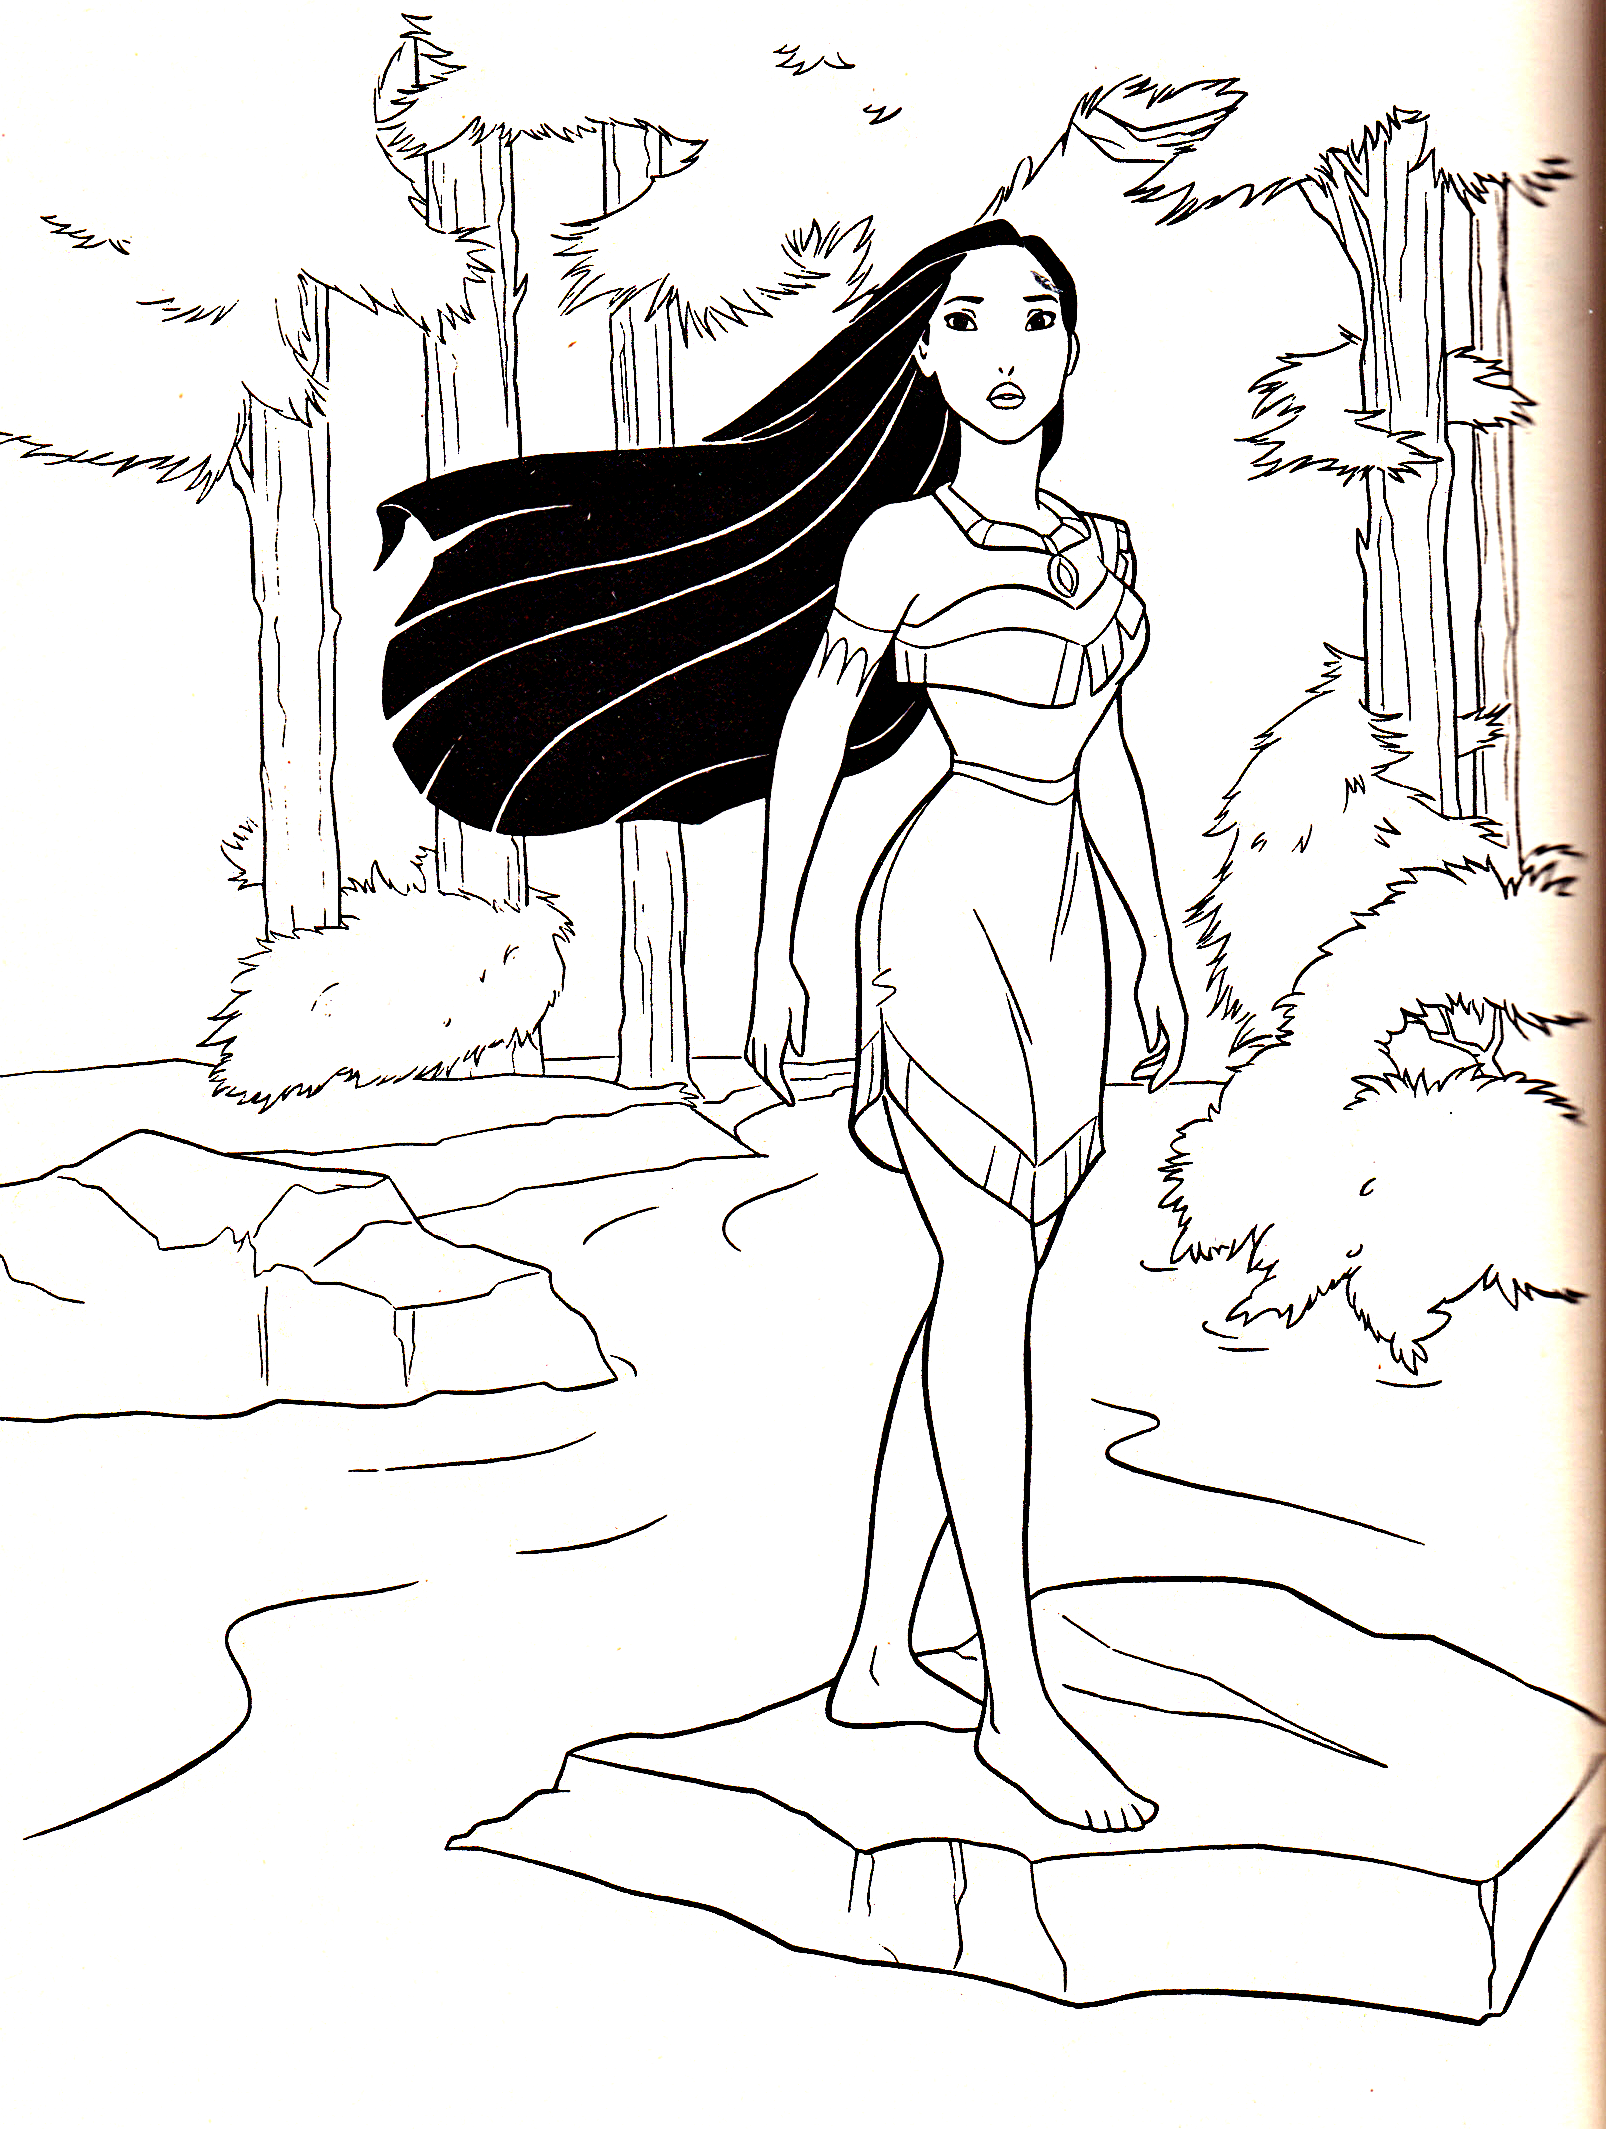 Coloring pictures of pocahontas The Lion King - Wikipedia